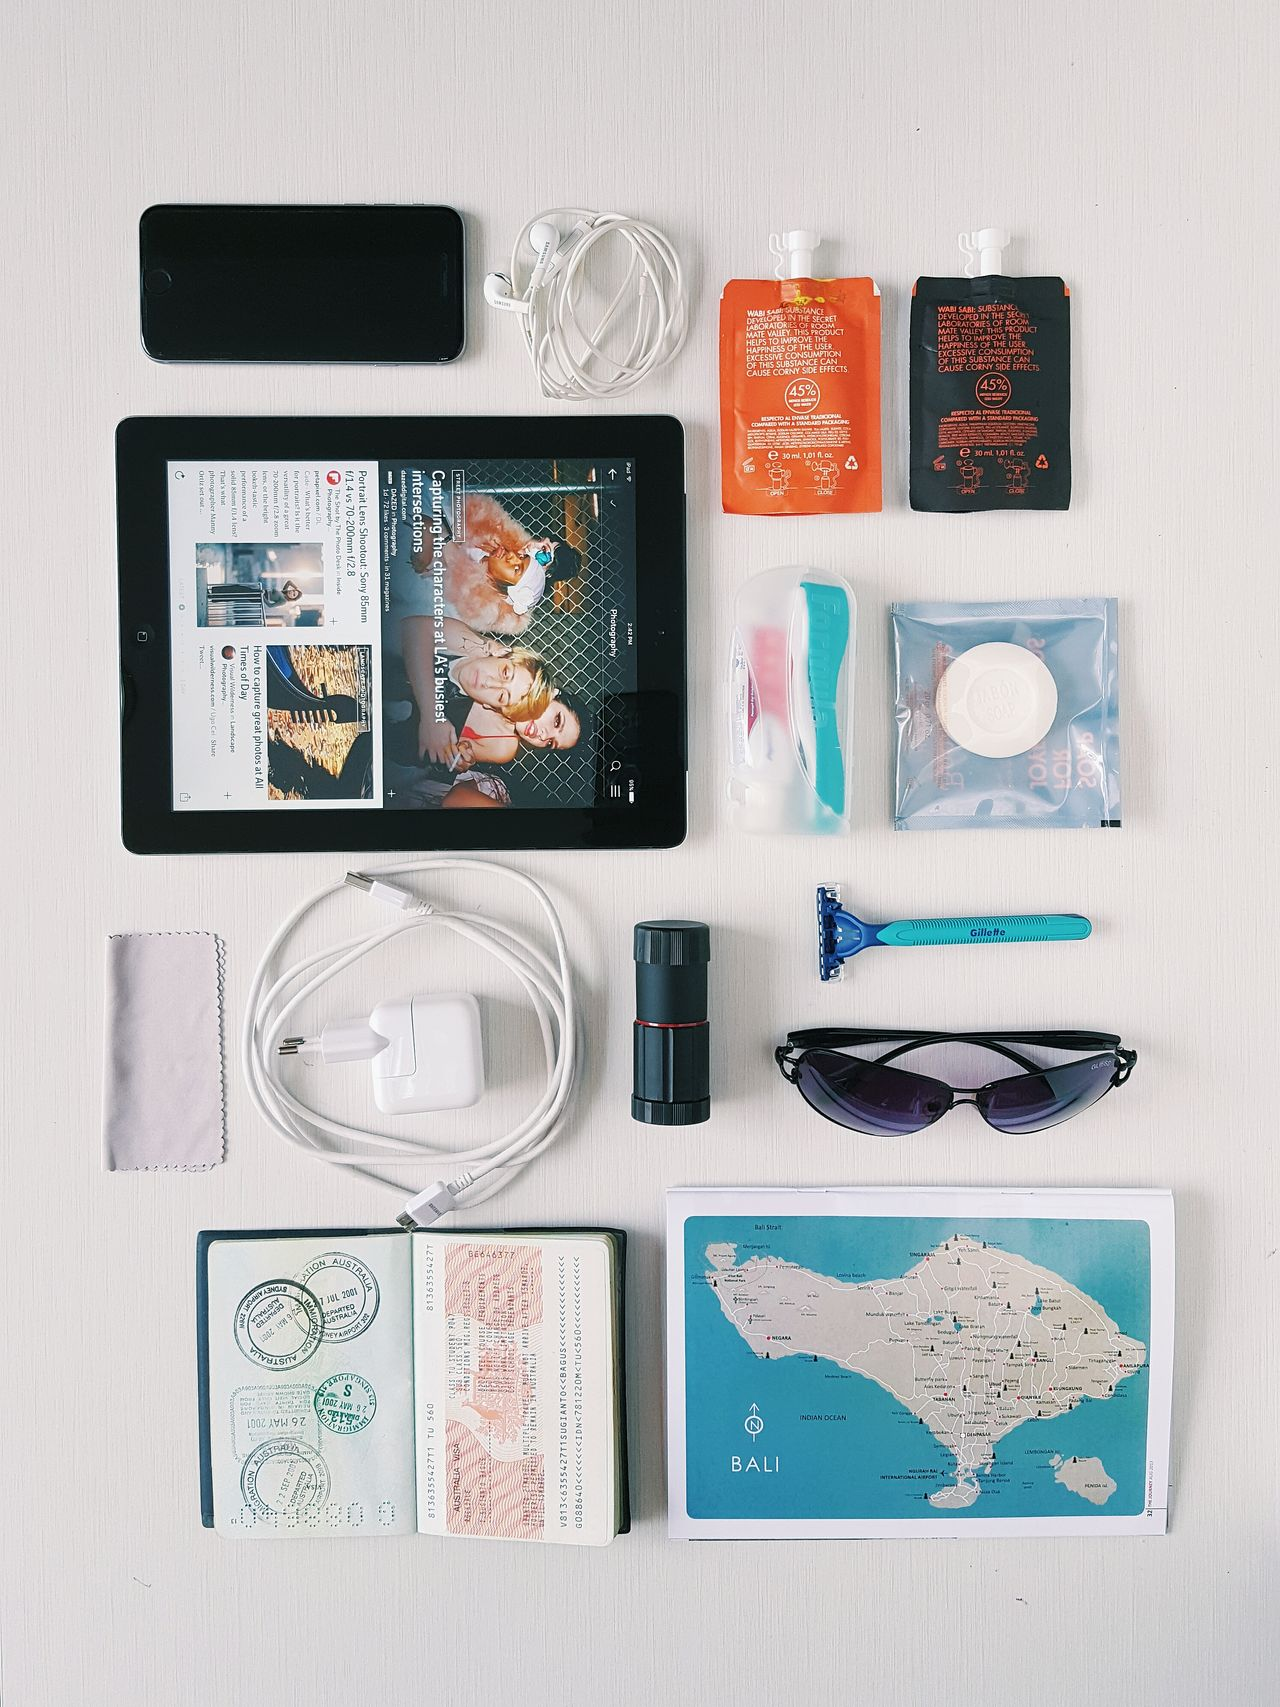 Business Connection Digital Tablet Guide Internet Map Neat No People Office Organization Packing Passport Portability Portable Information Device Studio Shot Technology Technology Photography Touch Screen Travel Travel Item Travel Kit Traveling Travelling Wireless Technology Let's Go. Together.